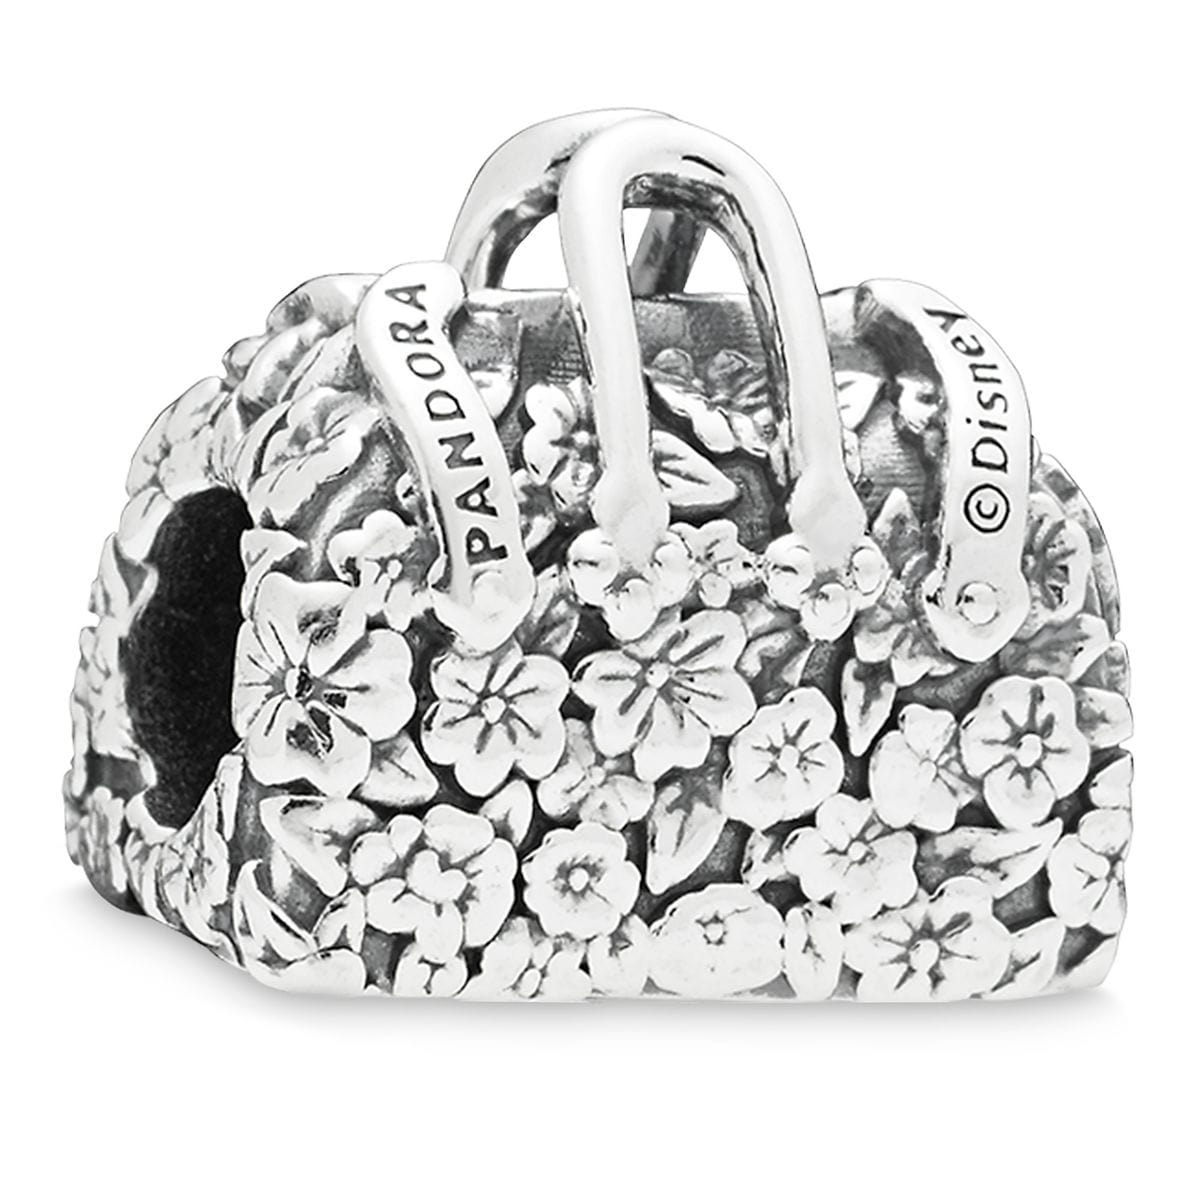 Product Image Of Mary Poppins Carpet Bag Charm By Pandora 1